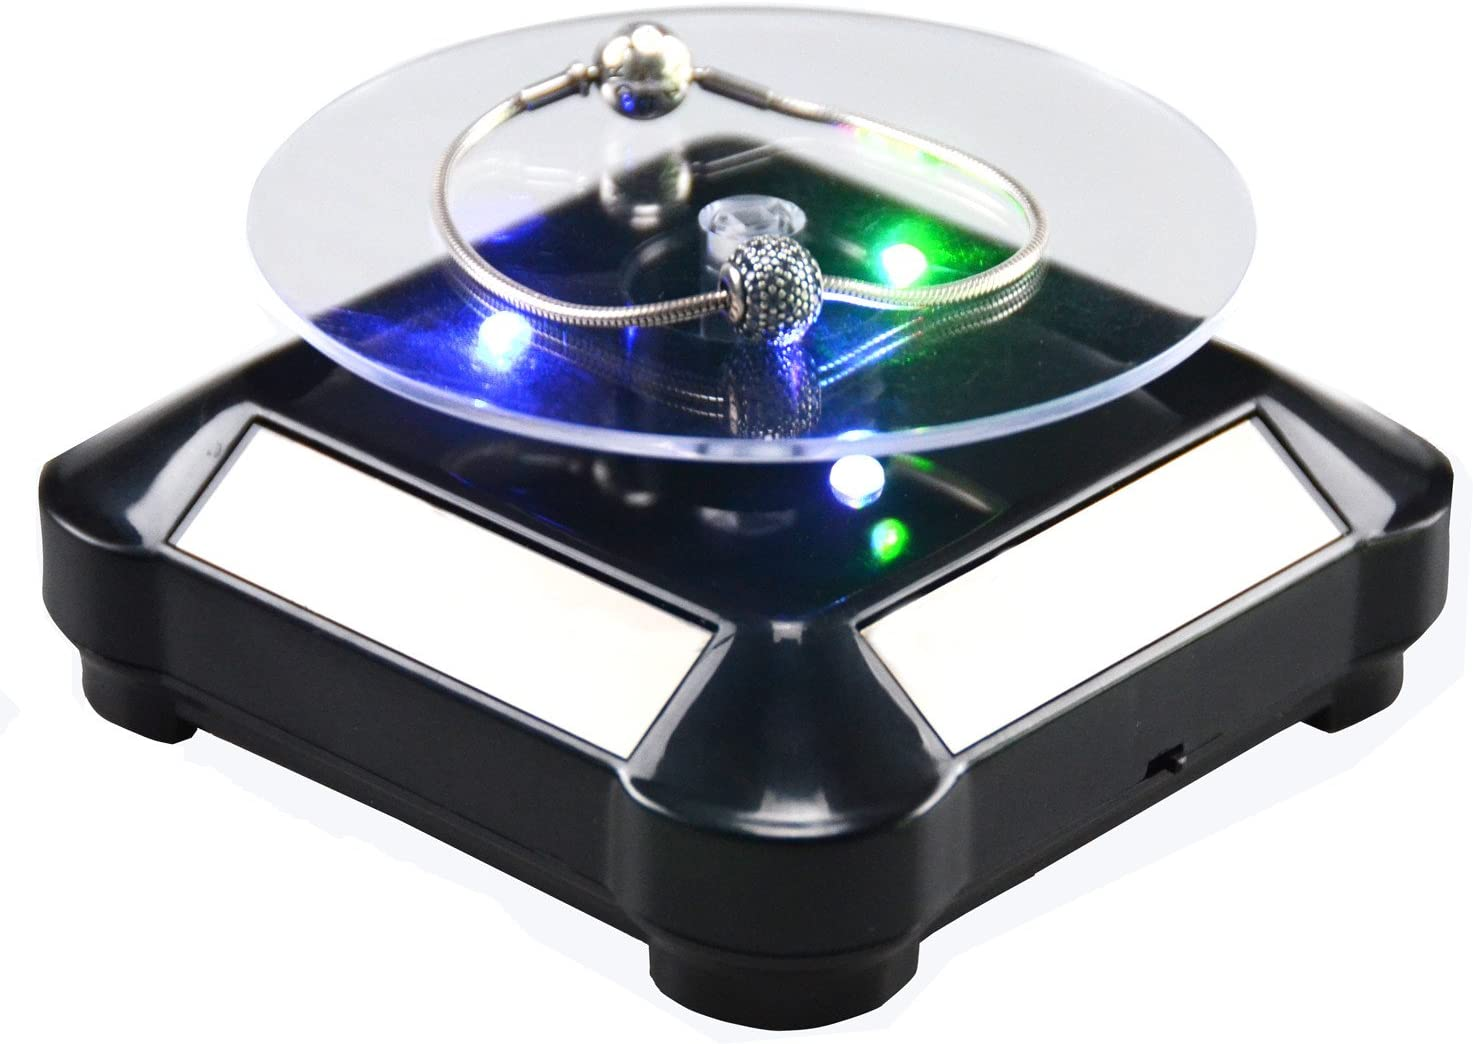 "Black 10/"" Shop Display Stand 360 Degree Jewelry Rotating Turntable W LED Light"